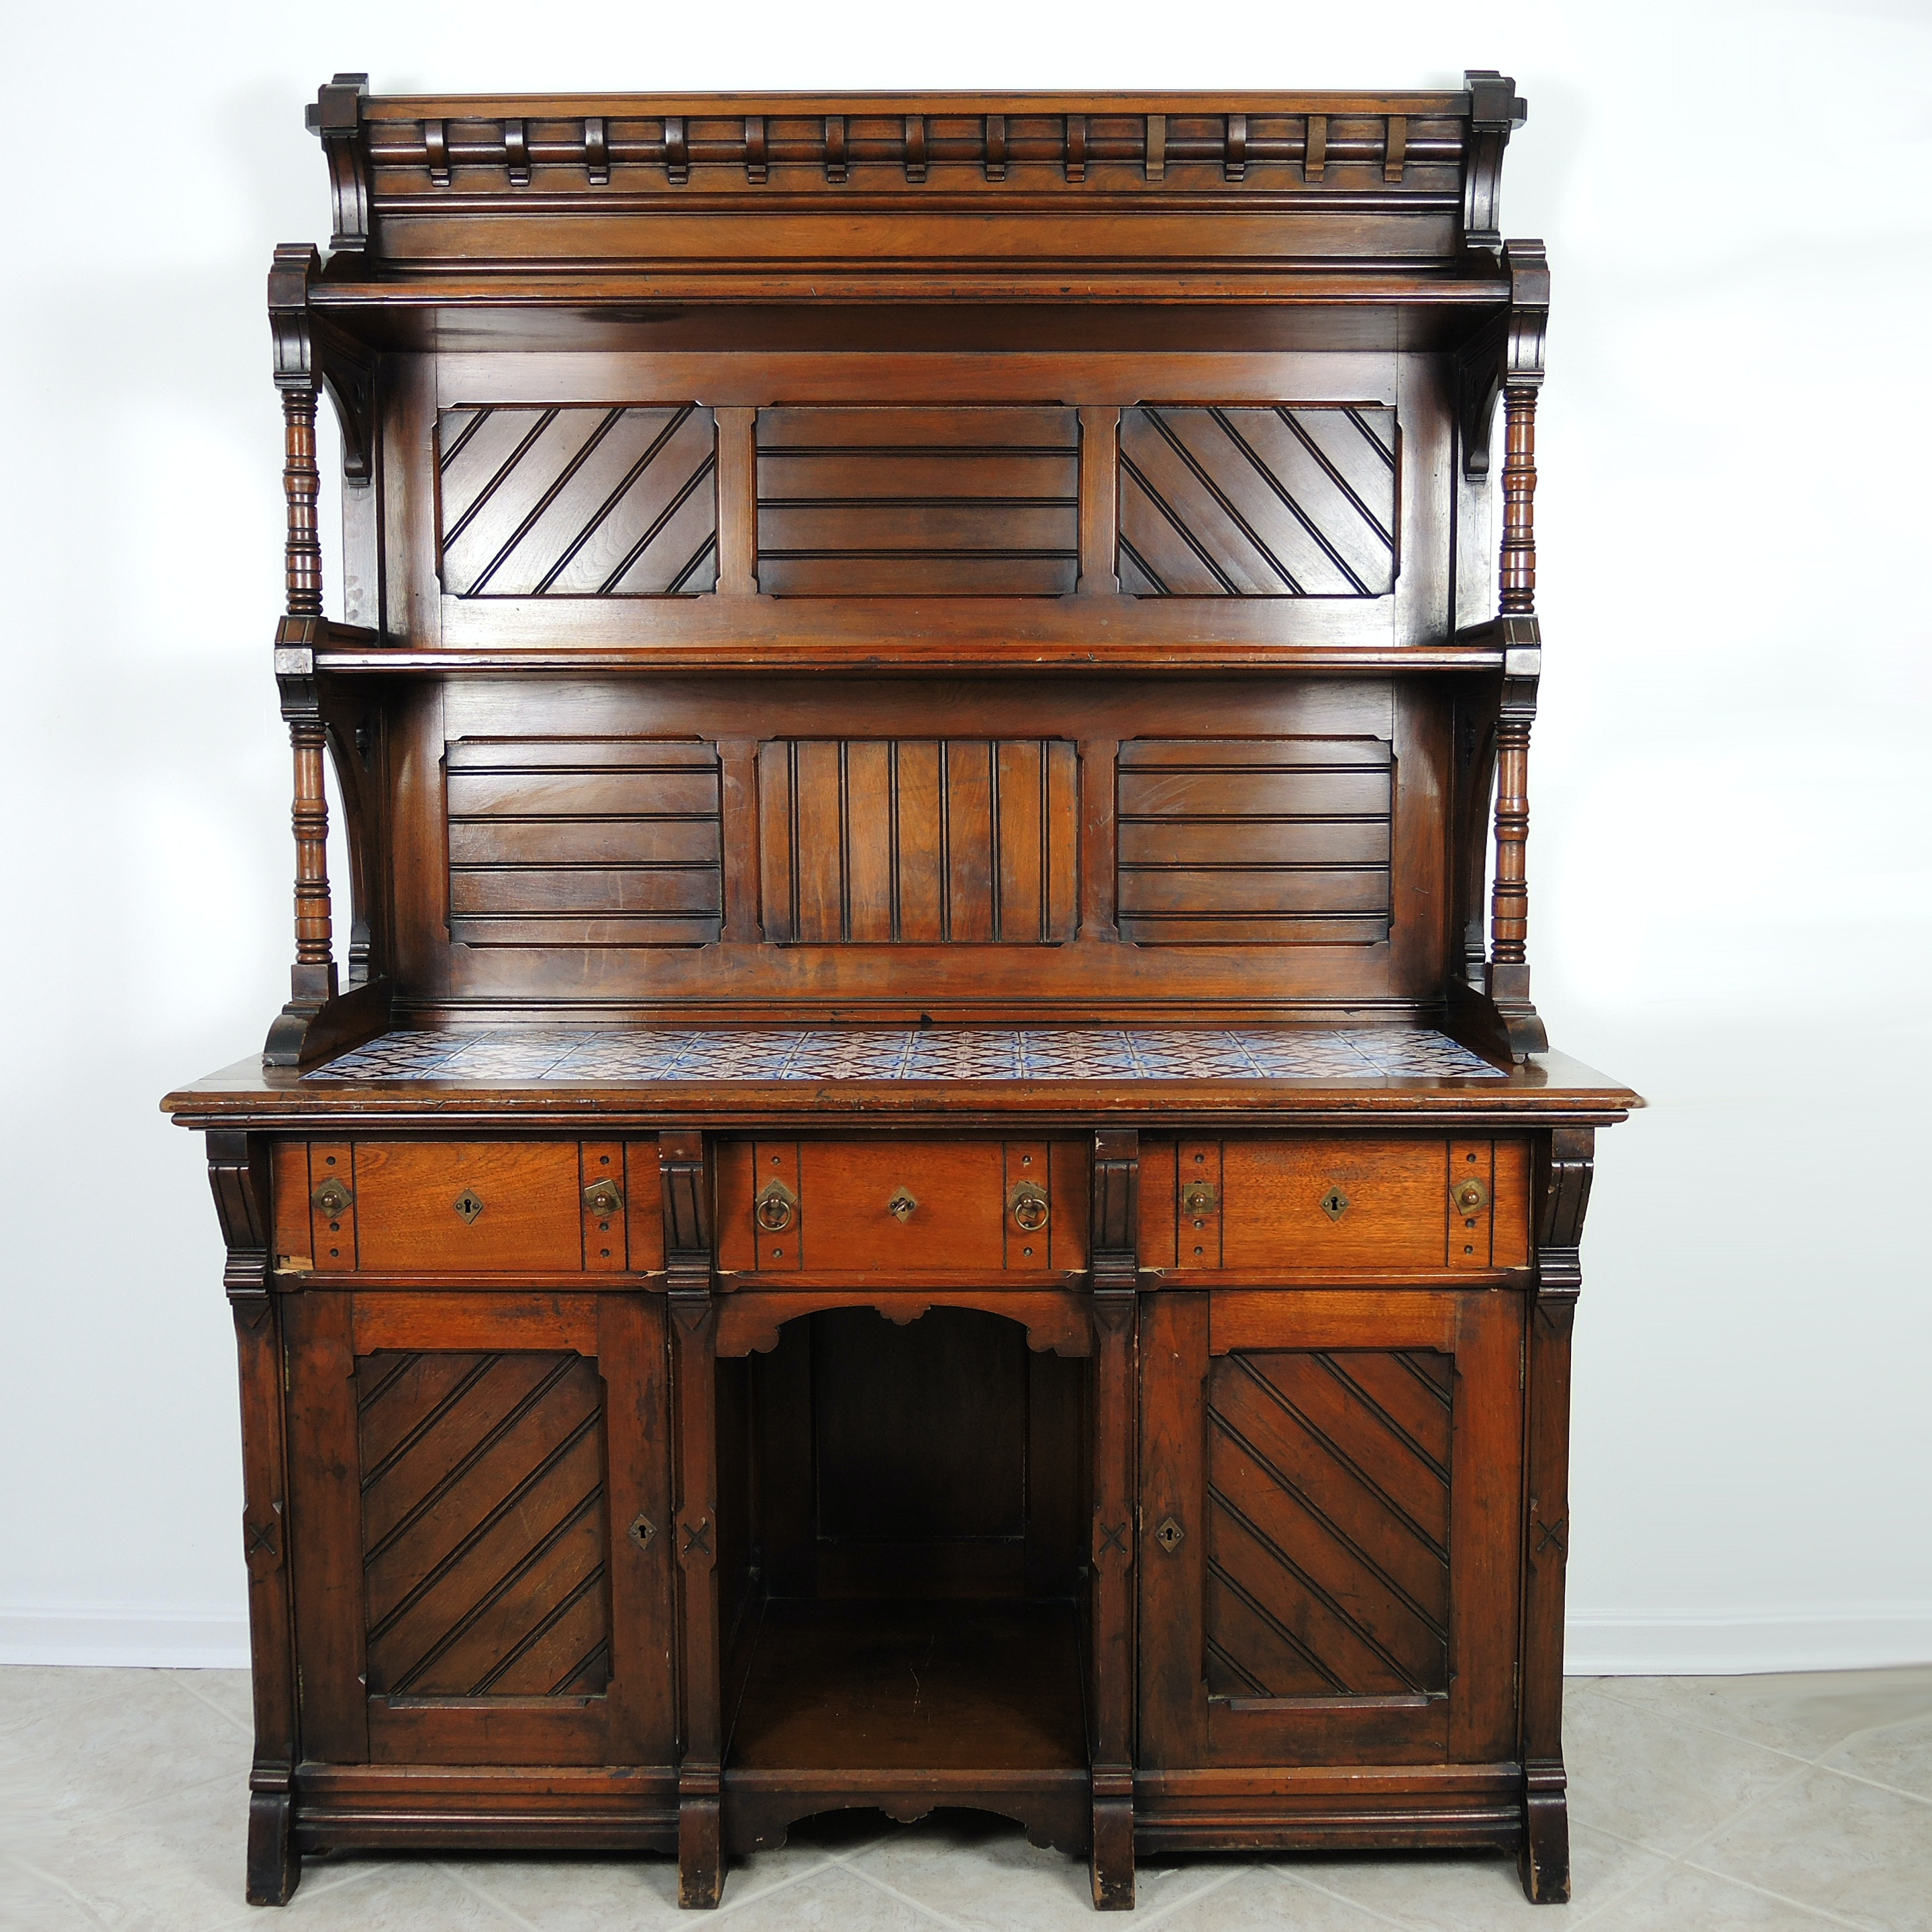 Late 19th Century Eastlake Tile Top Sideboard Cabinet in Walnut